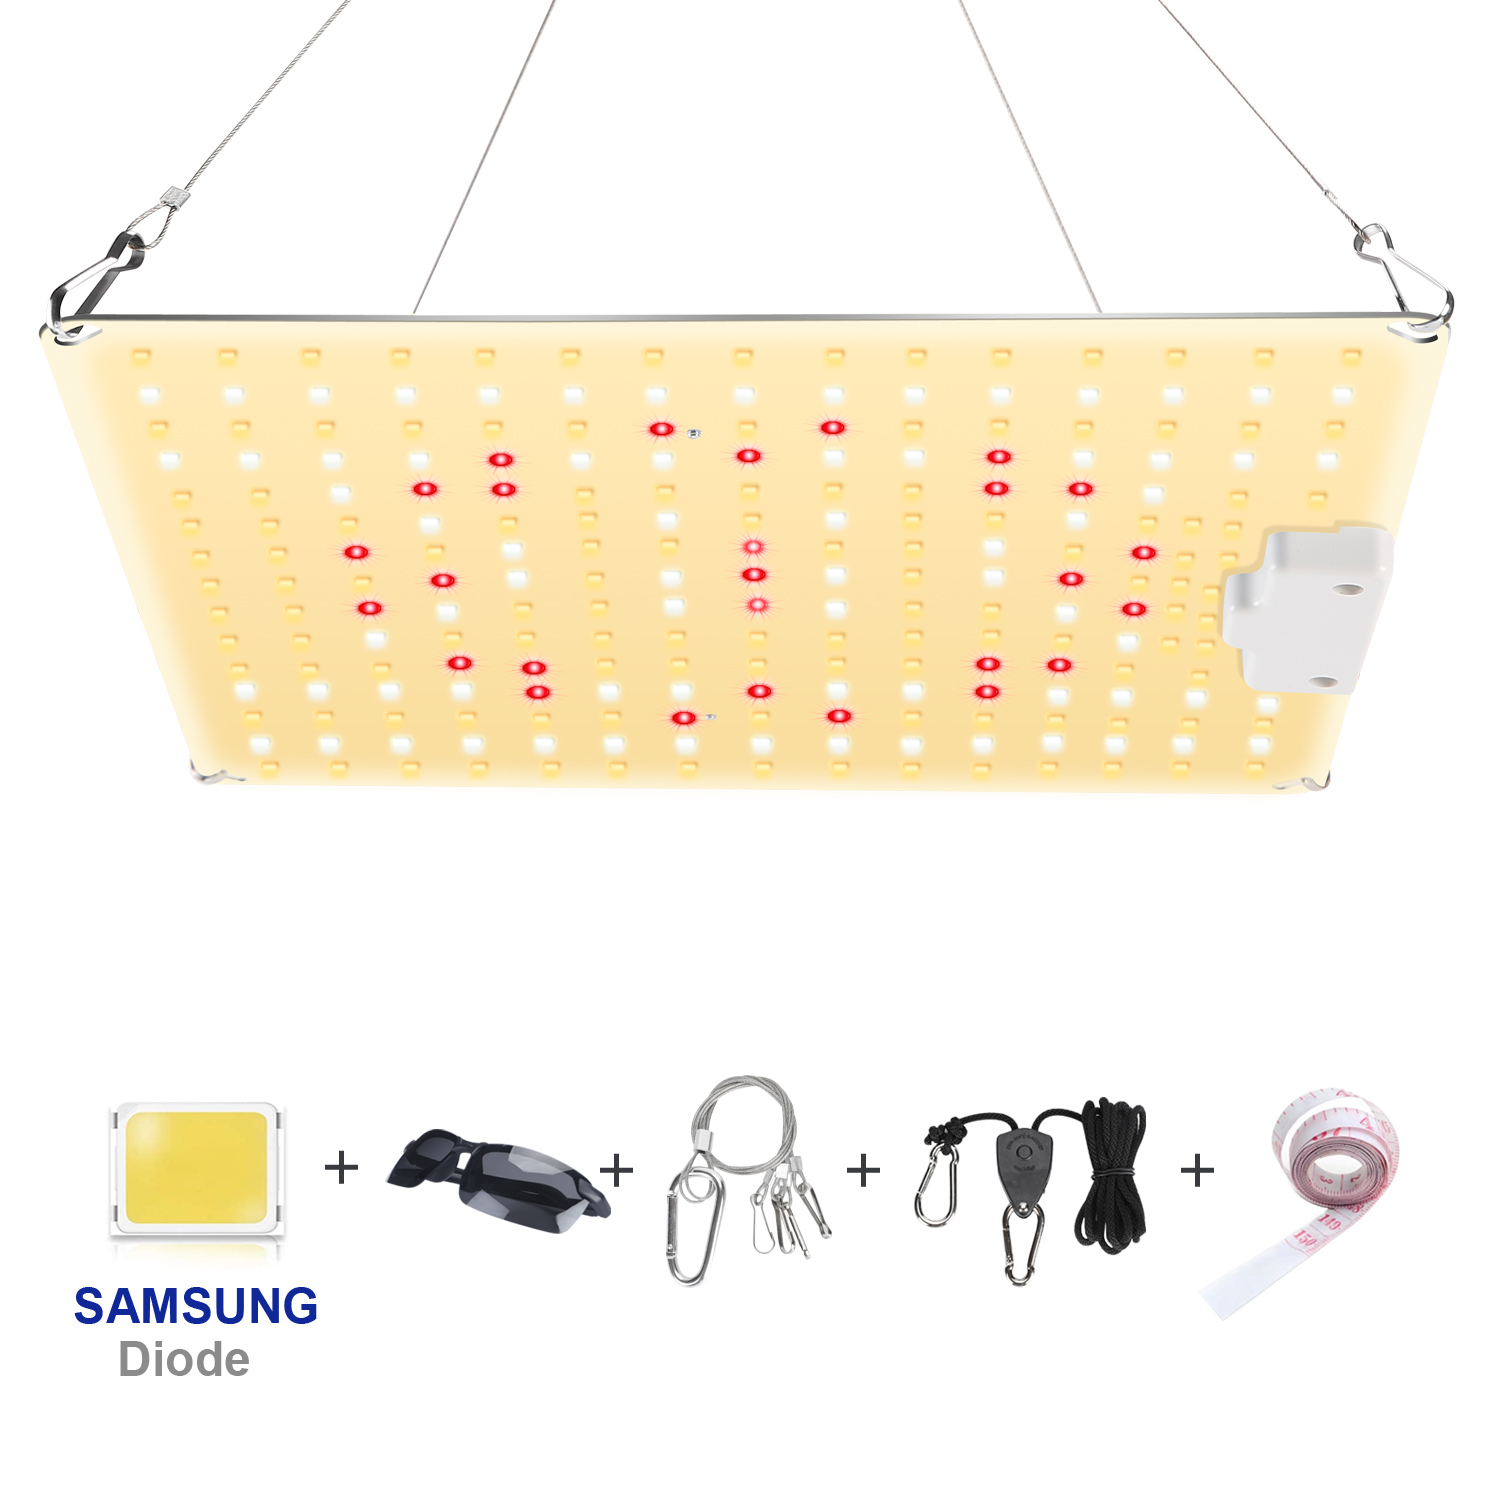 With Samsung Diode LED Grow Light Full Spectrum 600W Plant Growth Light for Indoor Greenhouse Hydroponic Plants Growing Lamp